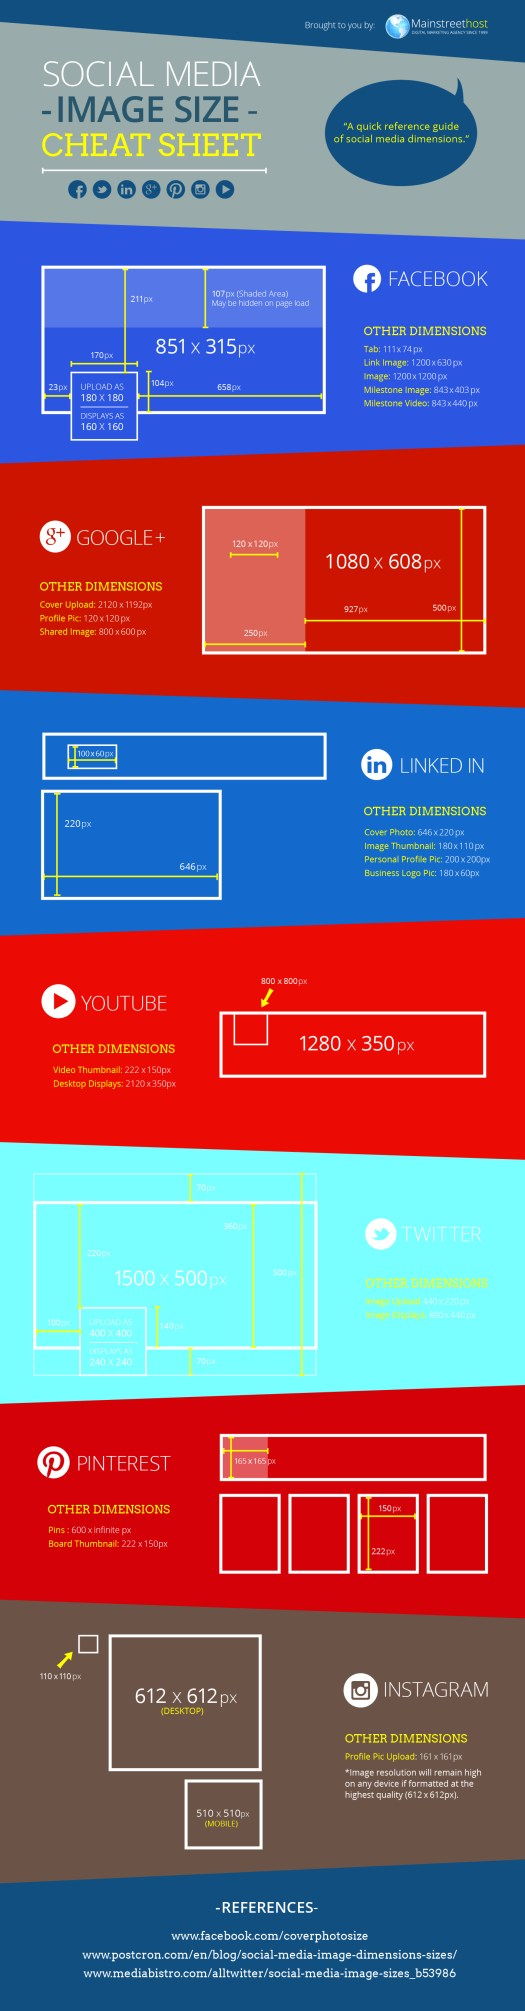 social media image size cheat sheet - 6 Modern Rules of Healthcare Marketing